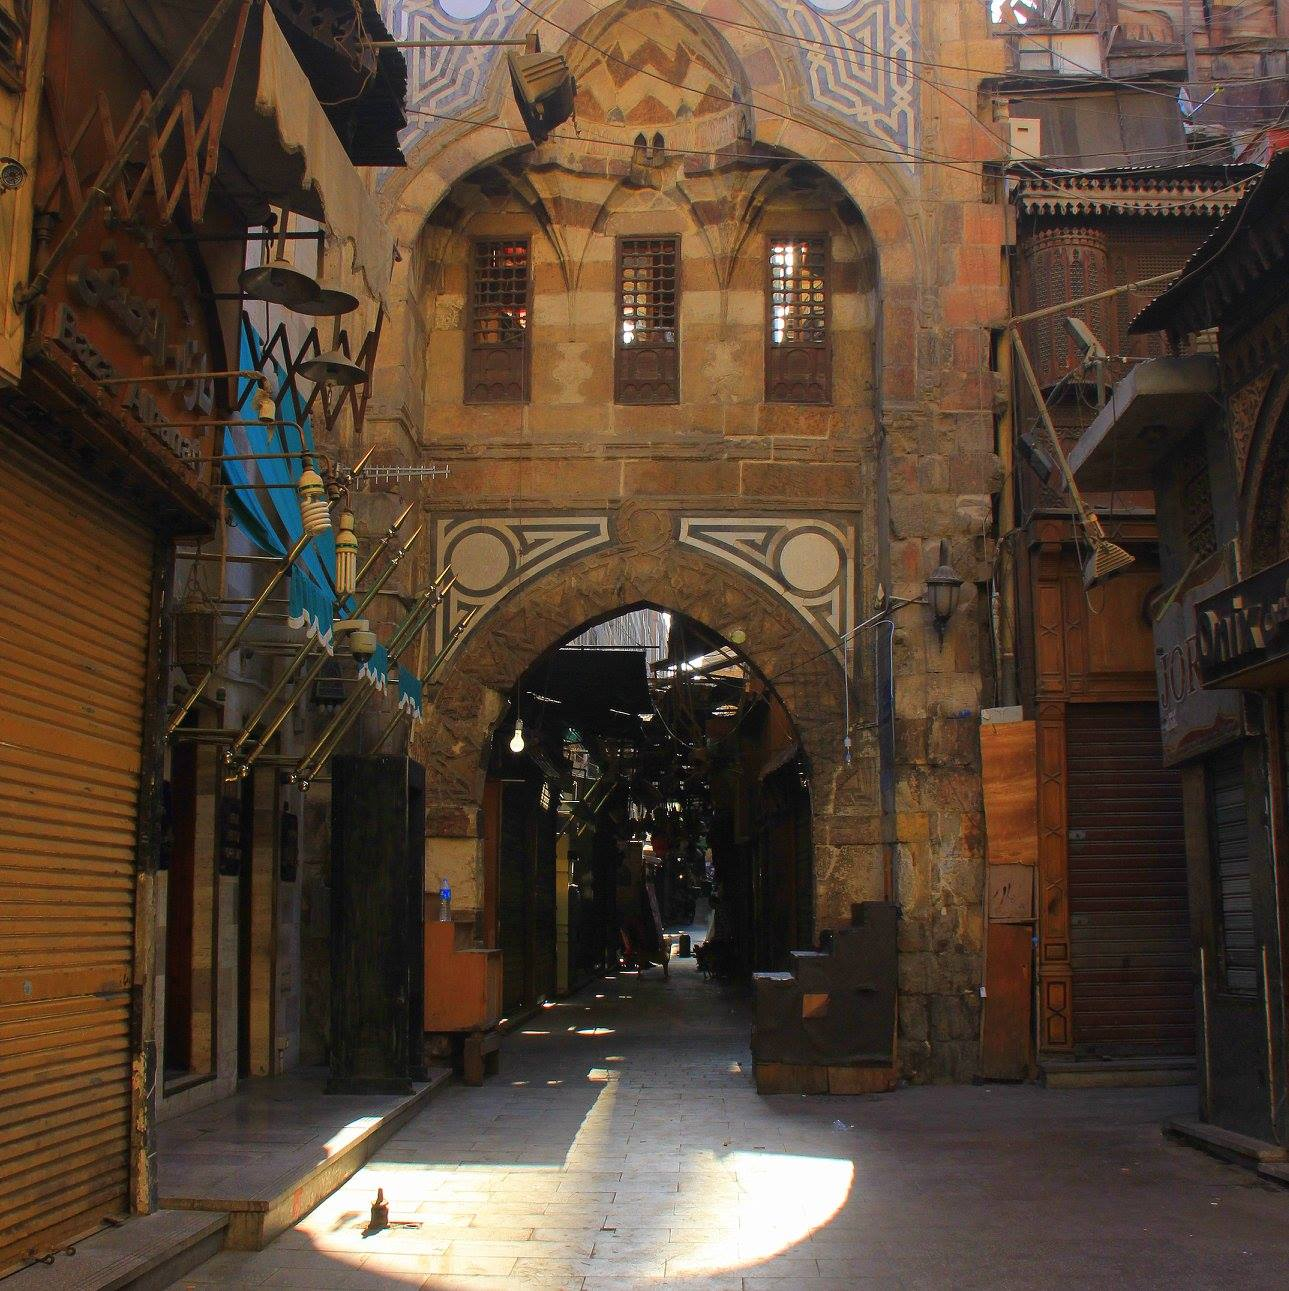 The old market of Cairo